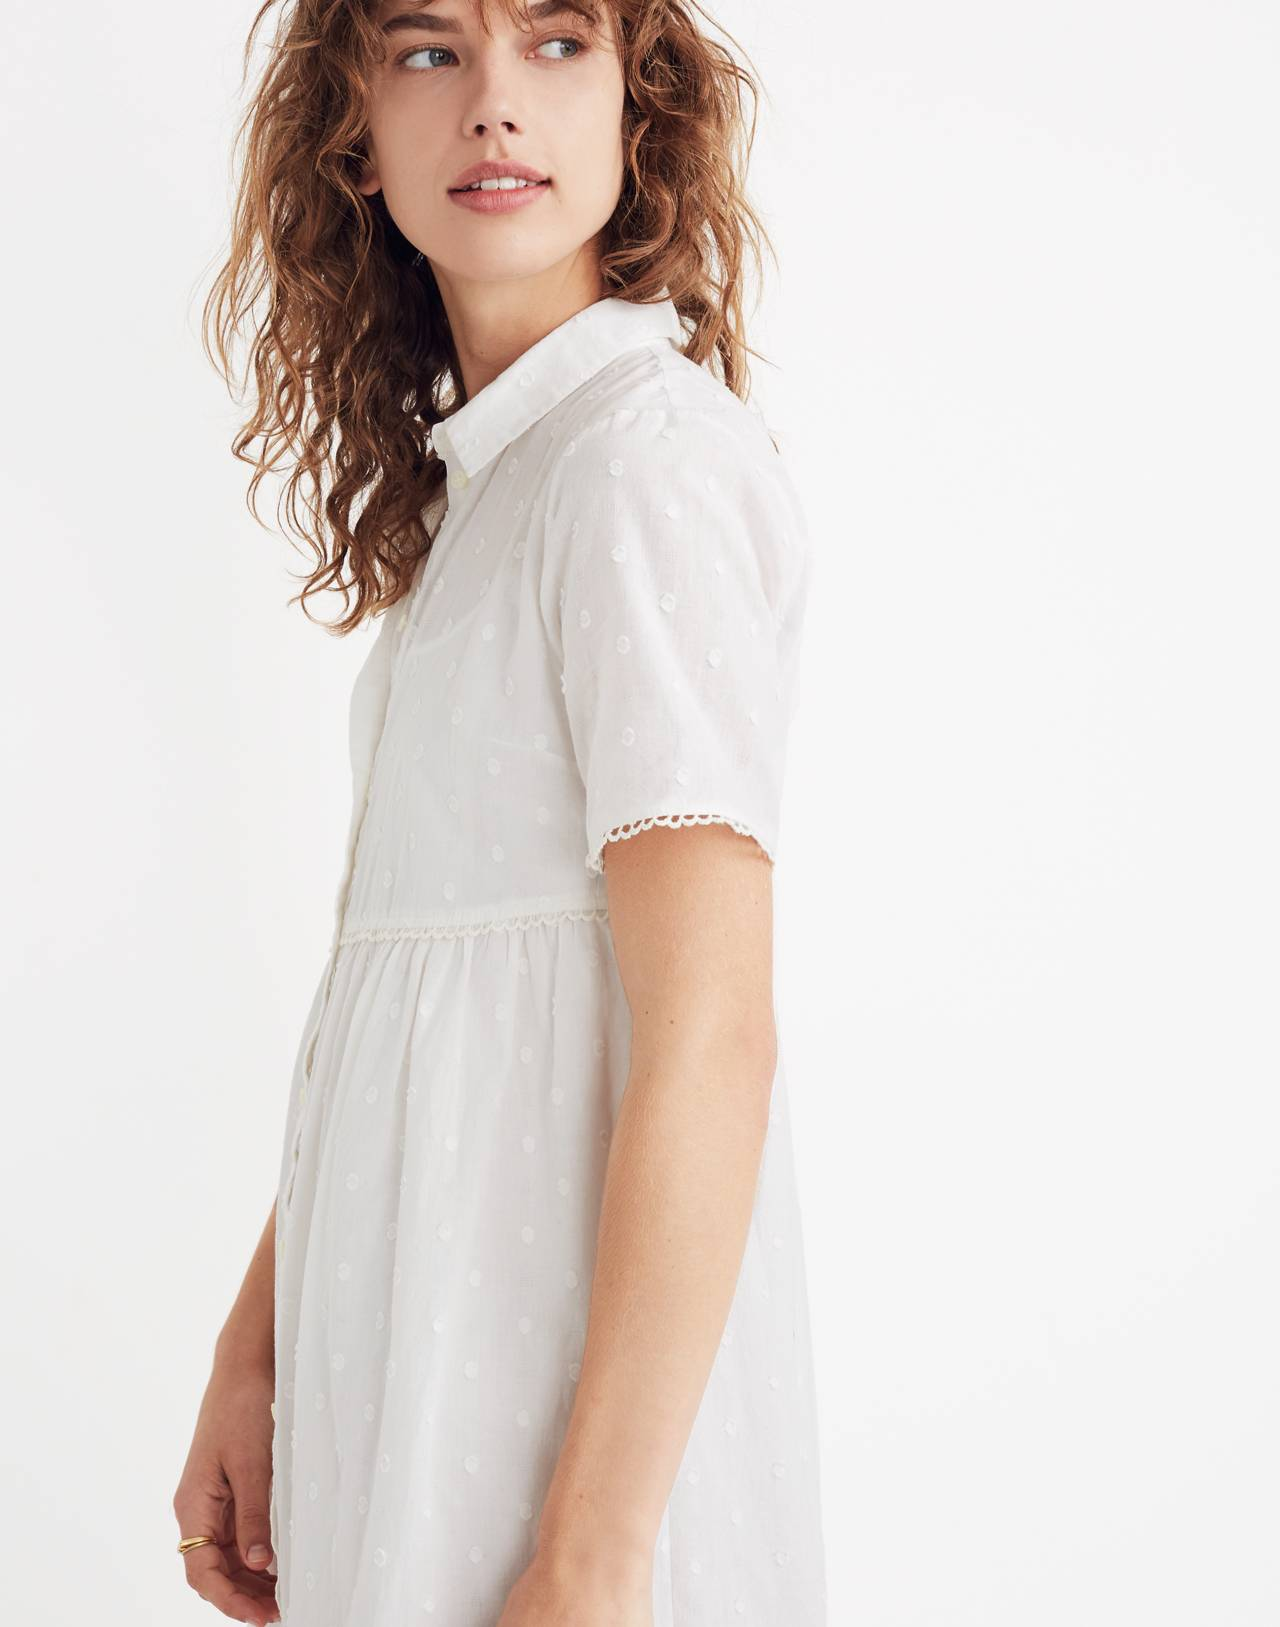 Clipdot Midi Shirtdress in eyelet white image 2